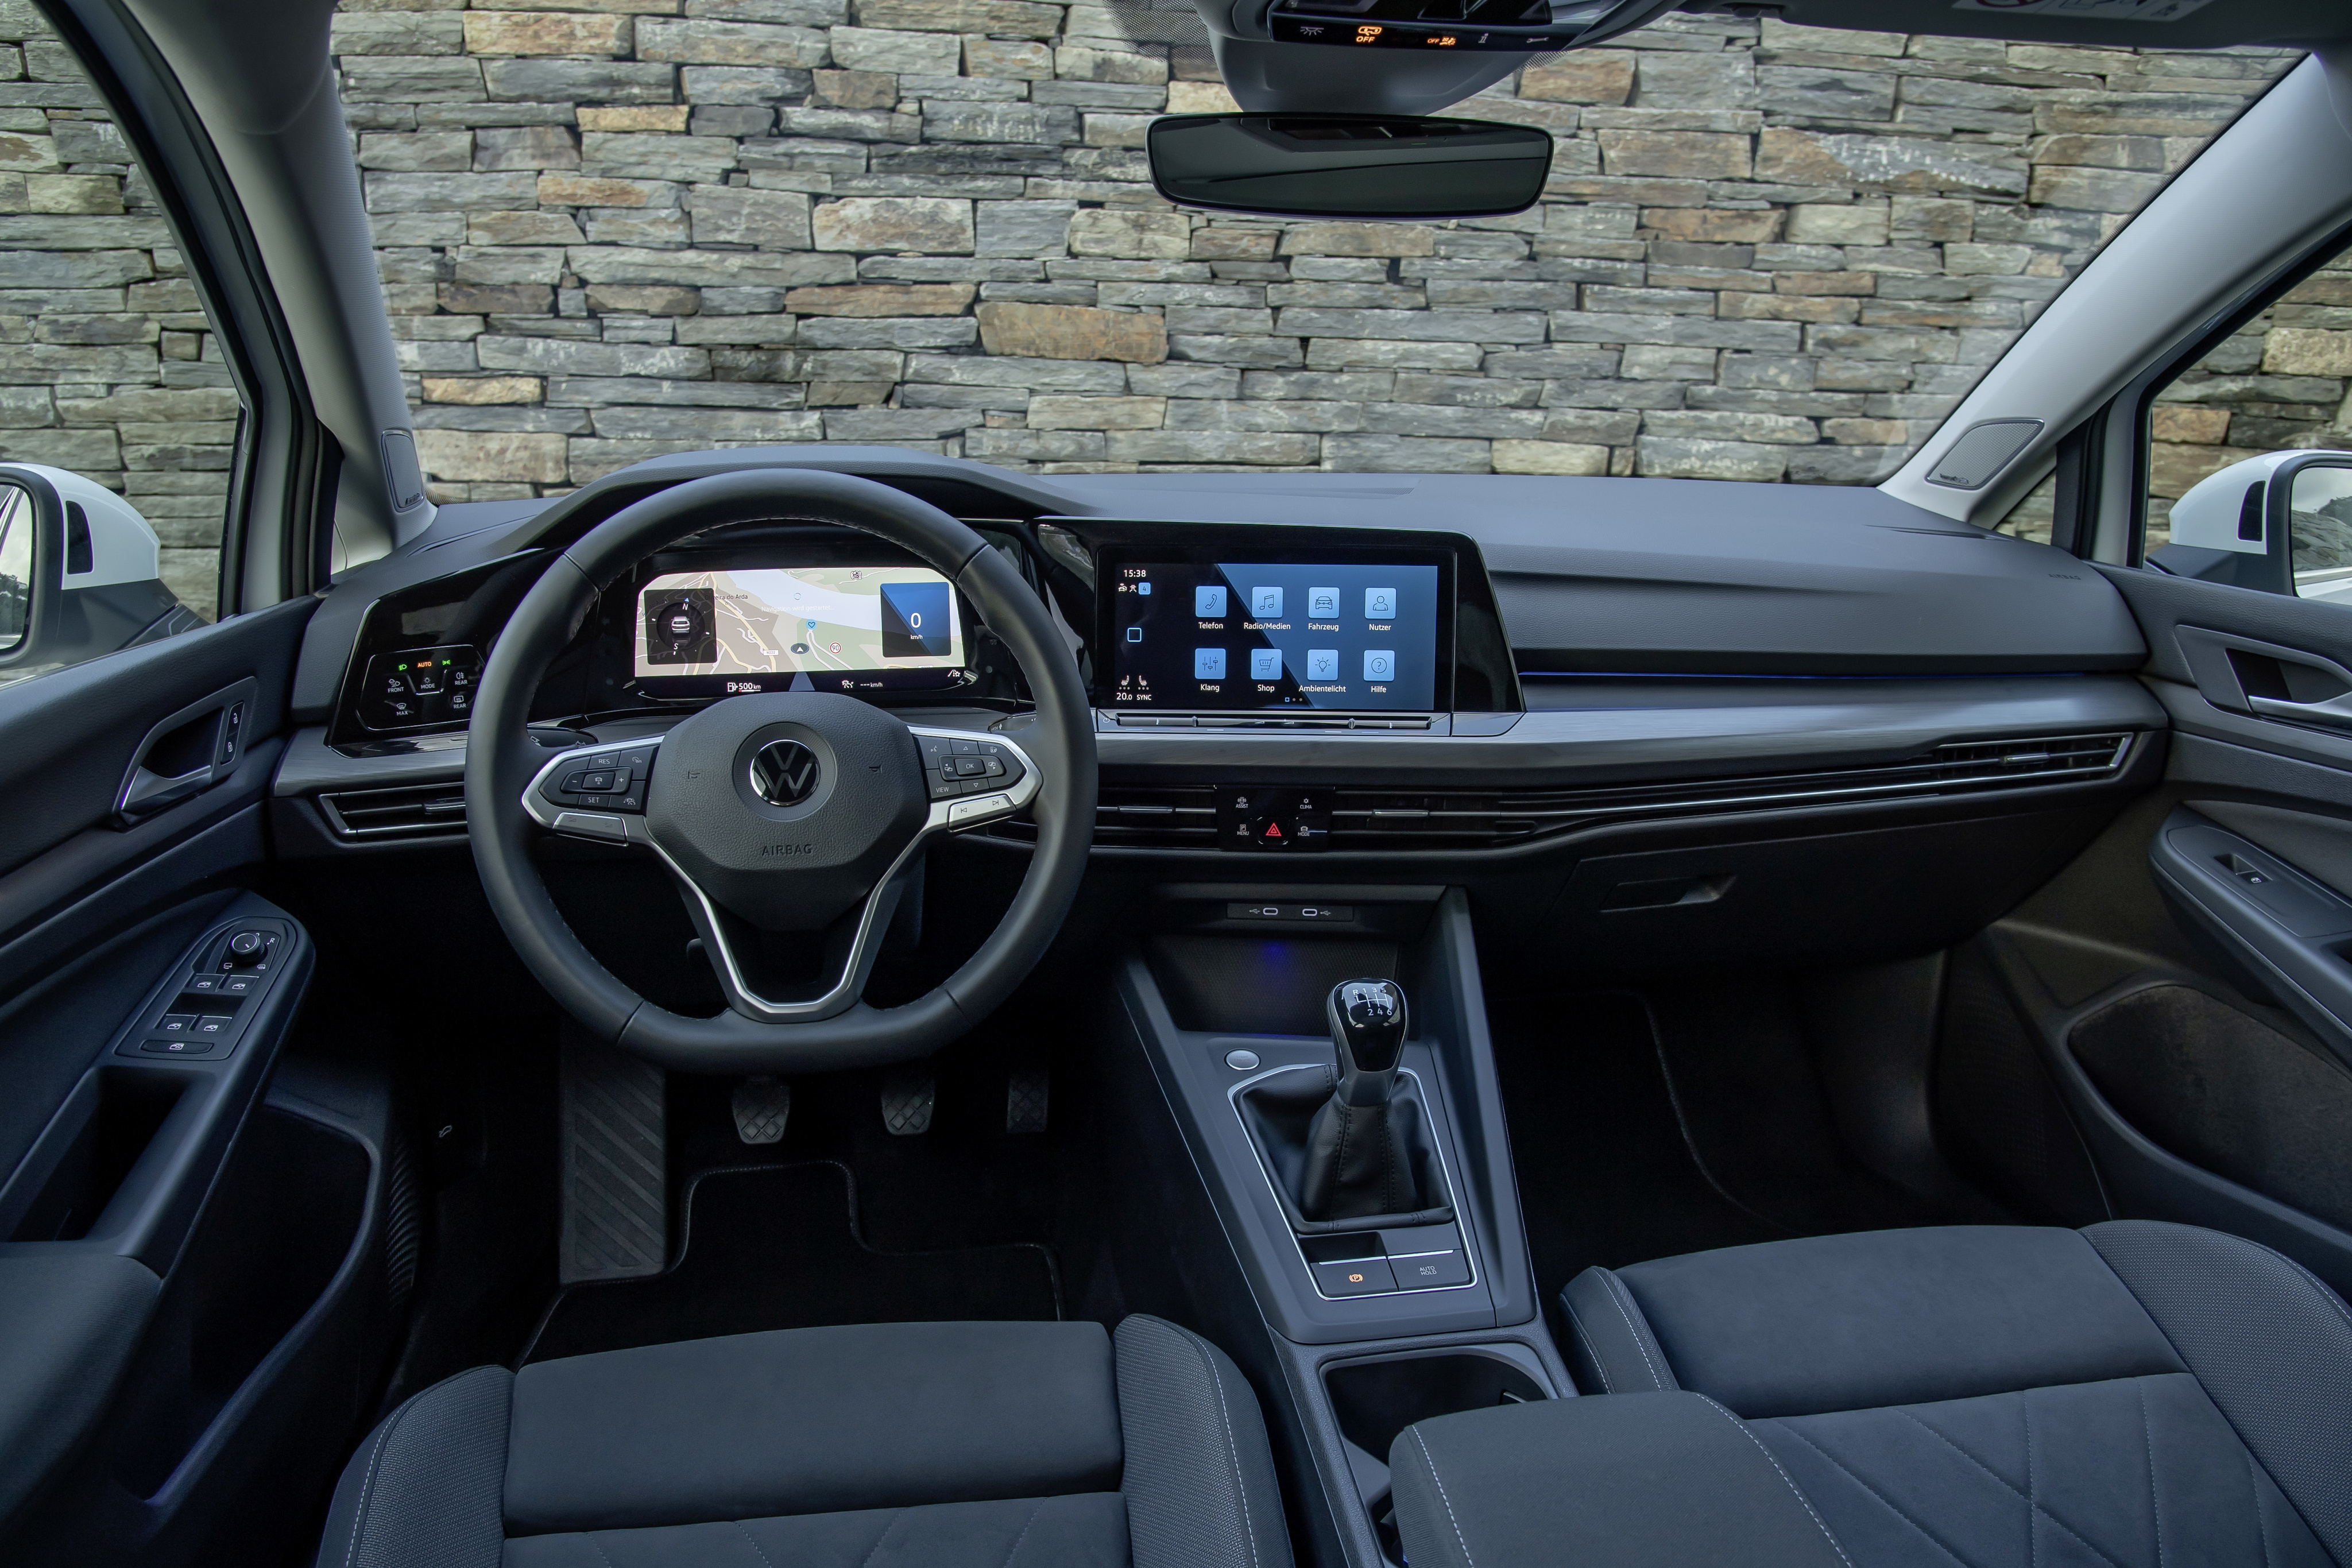 Interior of the new VW Golf 8